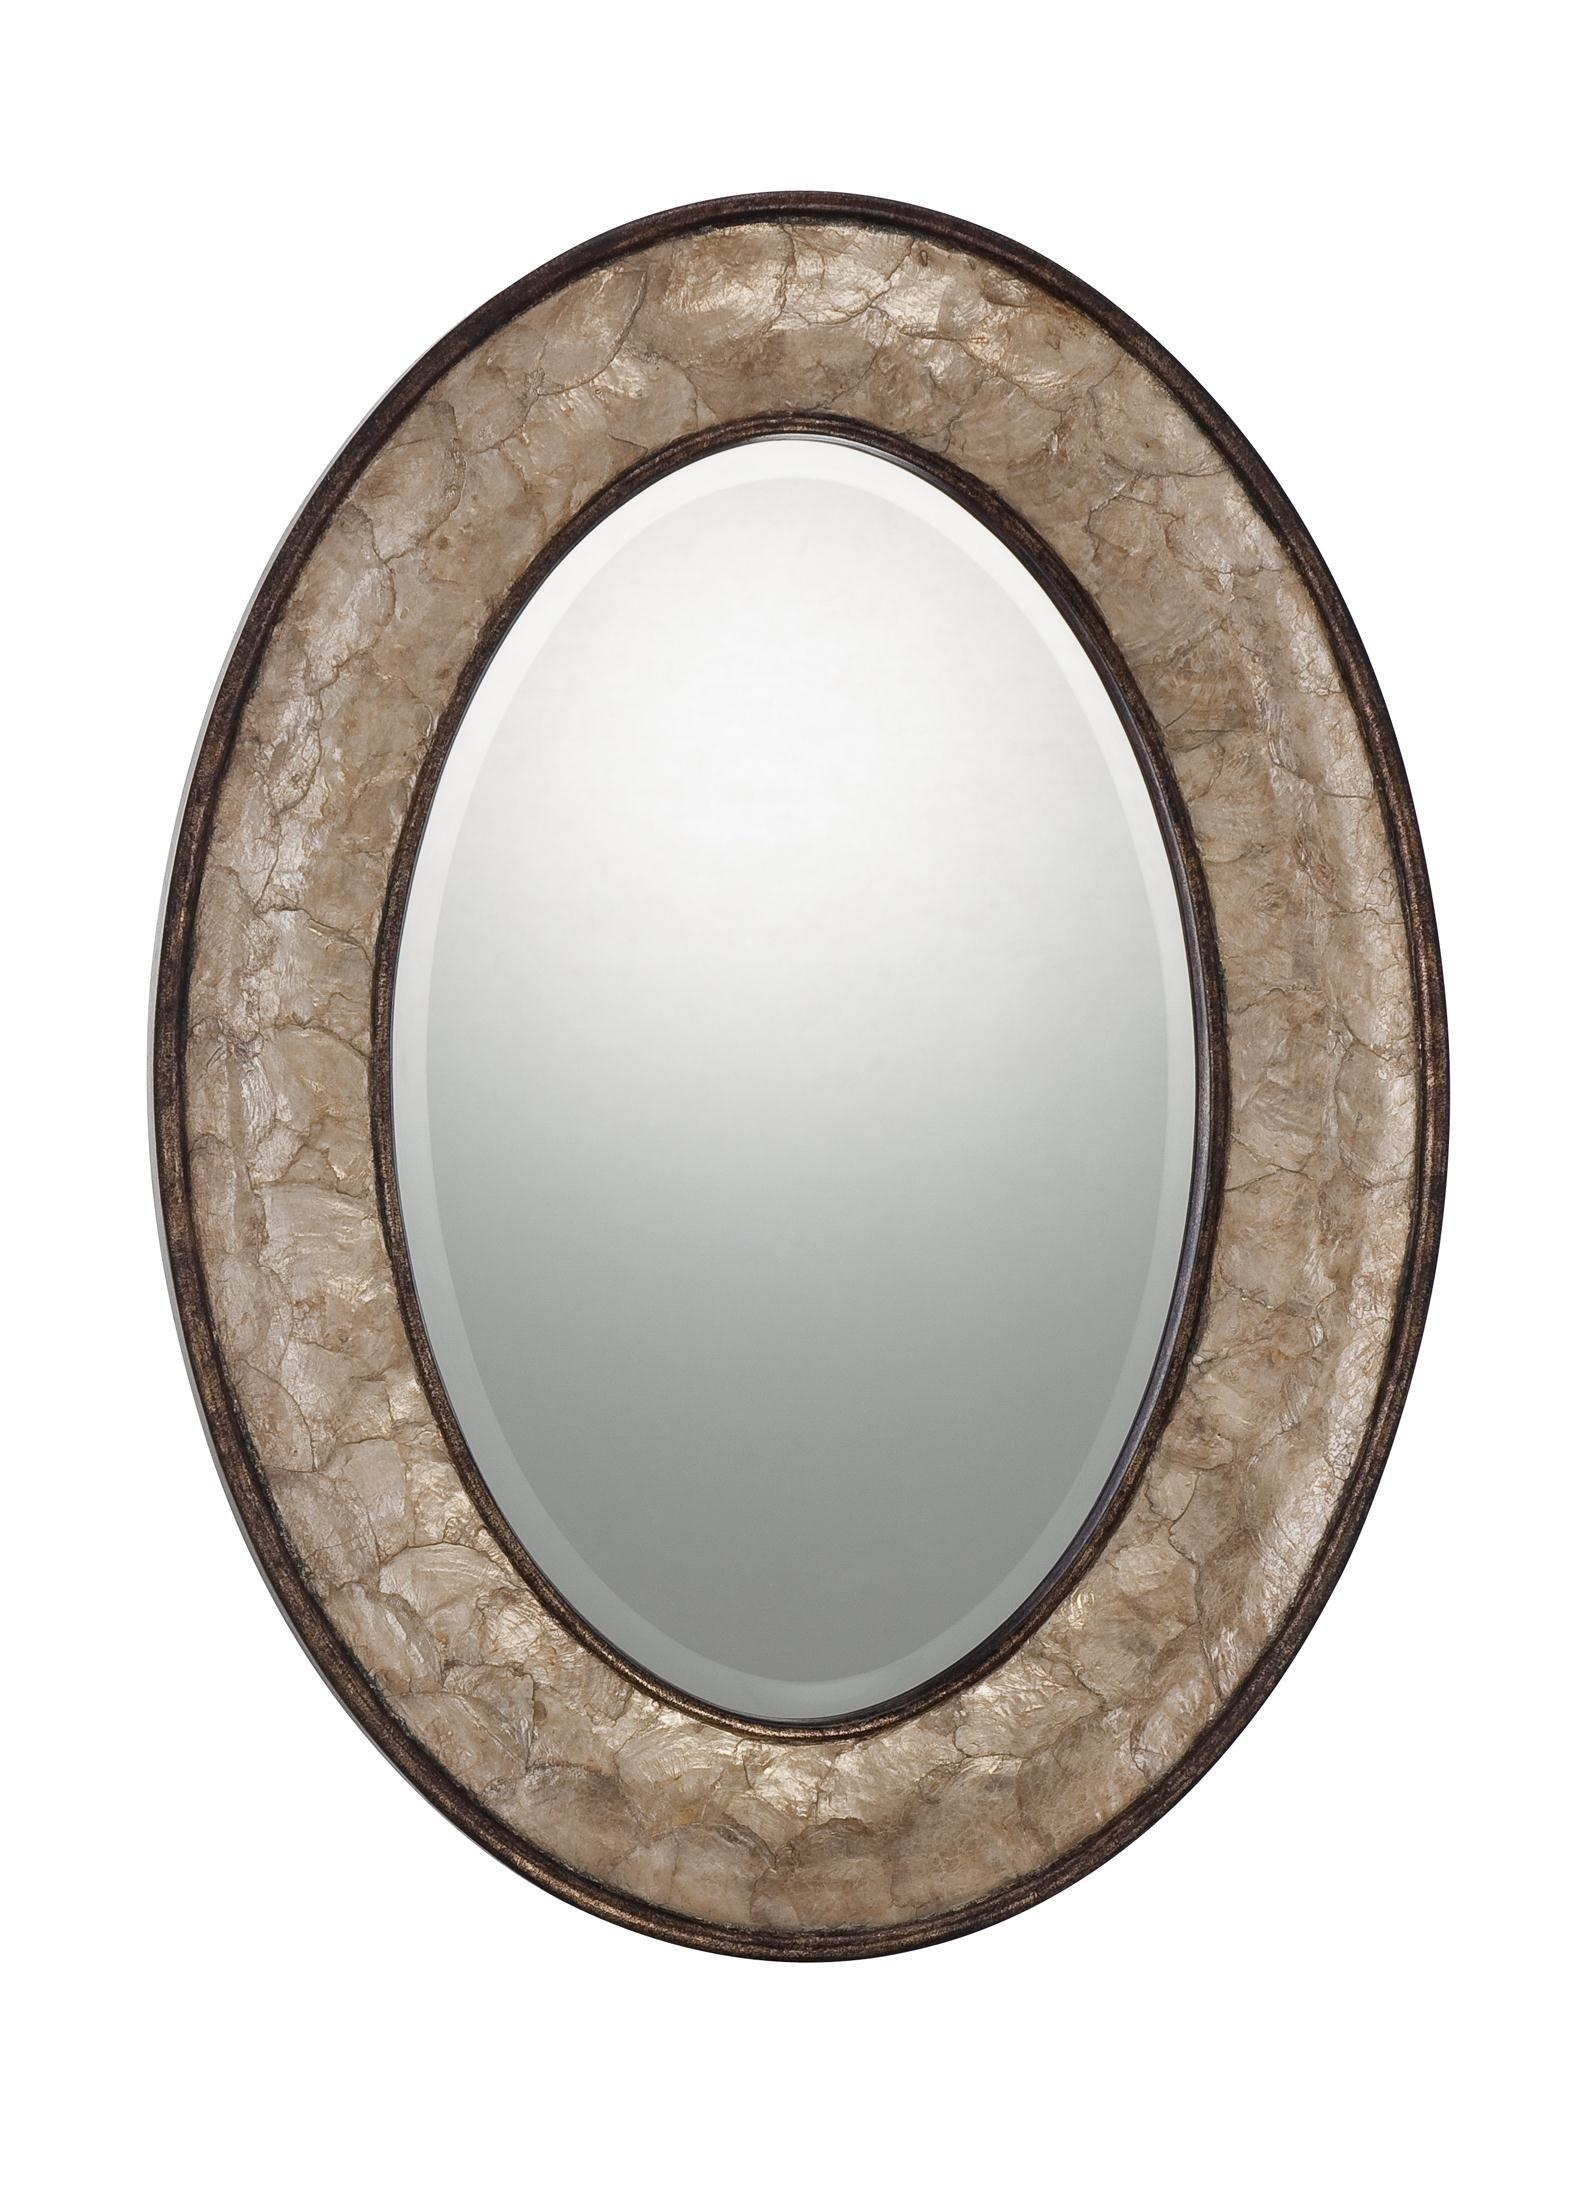 Cheap Oval Bathroom Mirrors : Oval Bathroom Mirrors Beautiful With Oval Bath Mirrors (Image 6 of 20)